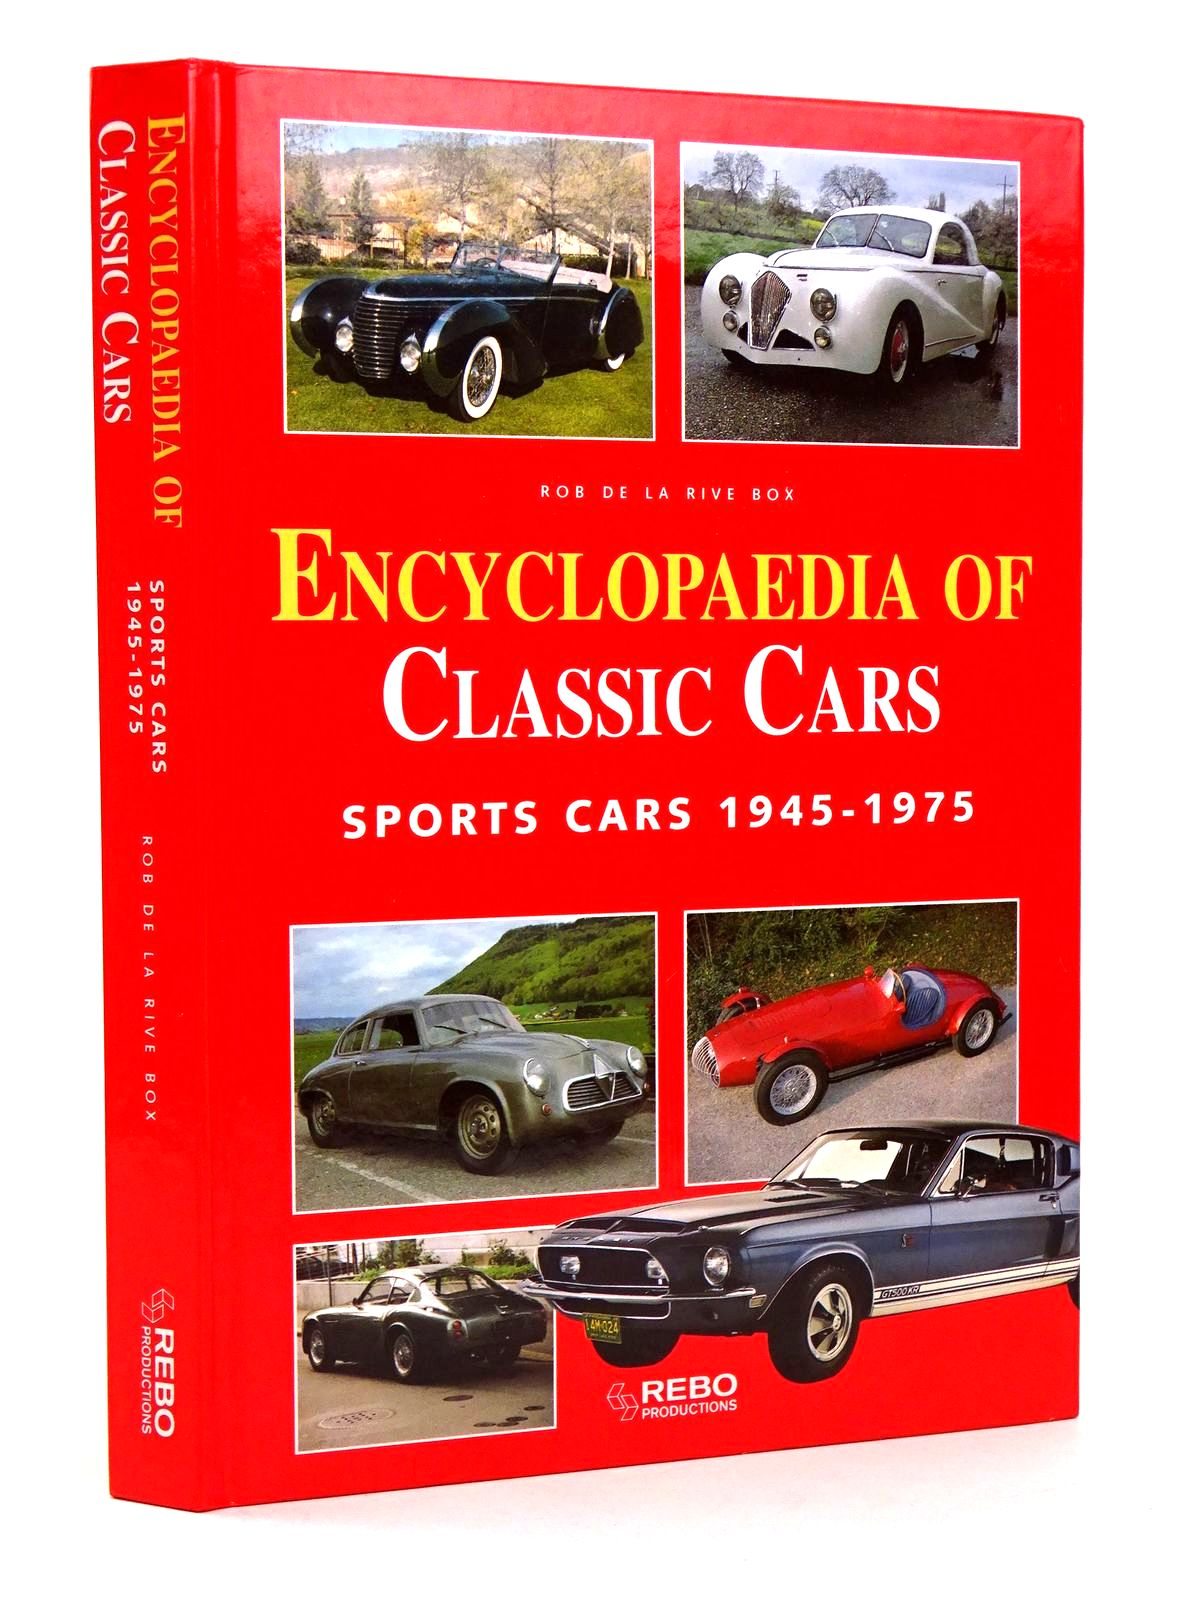 Photo of ENCYCLOPAEDIA OF CLASSIC CARS: SPORTS CARS 1945-1975 written by De La Rive Box, Rob published by Rebo Productions (STOCK CODE: 1818604)  for sale by Stella & Rose's Books